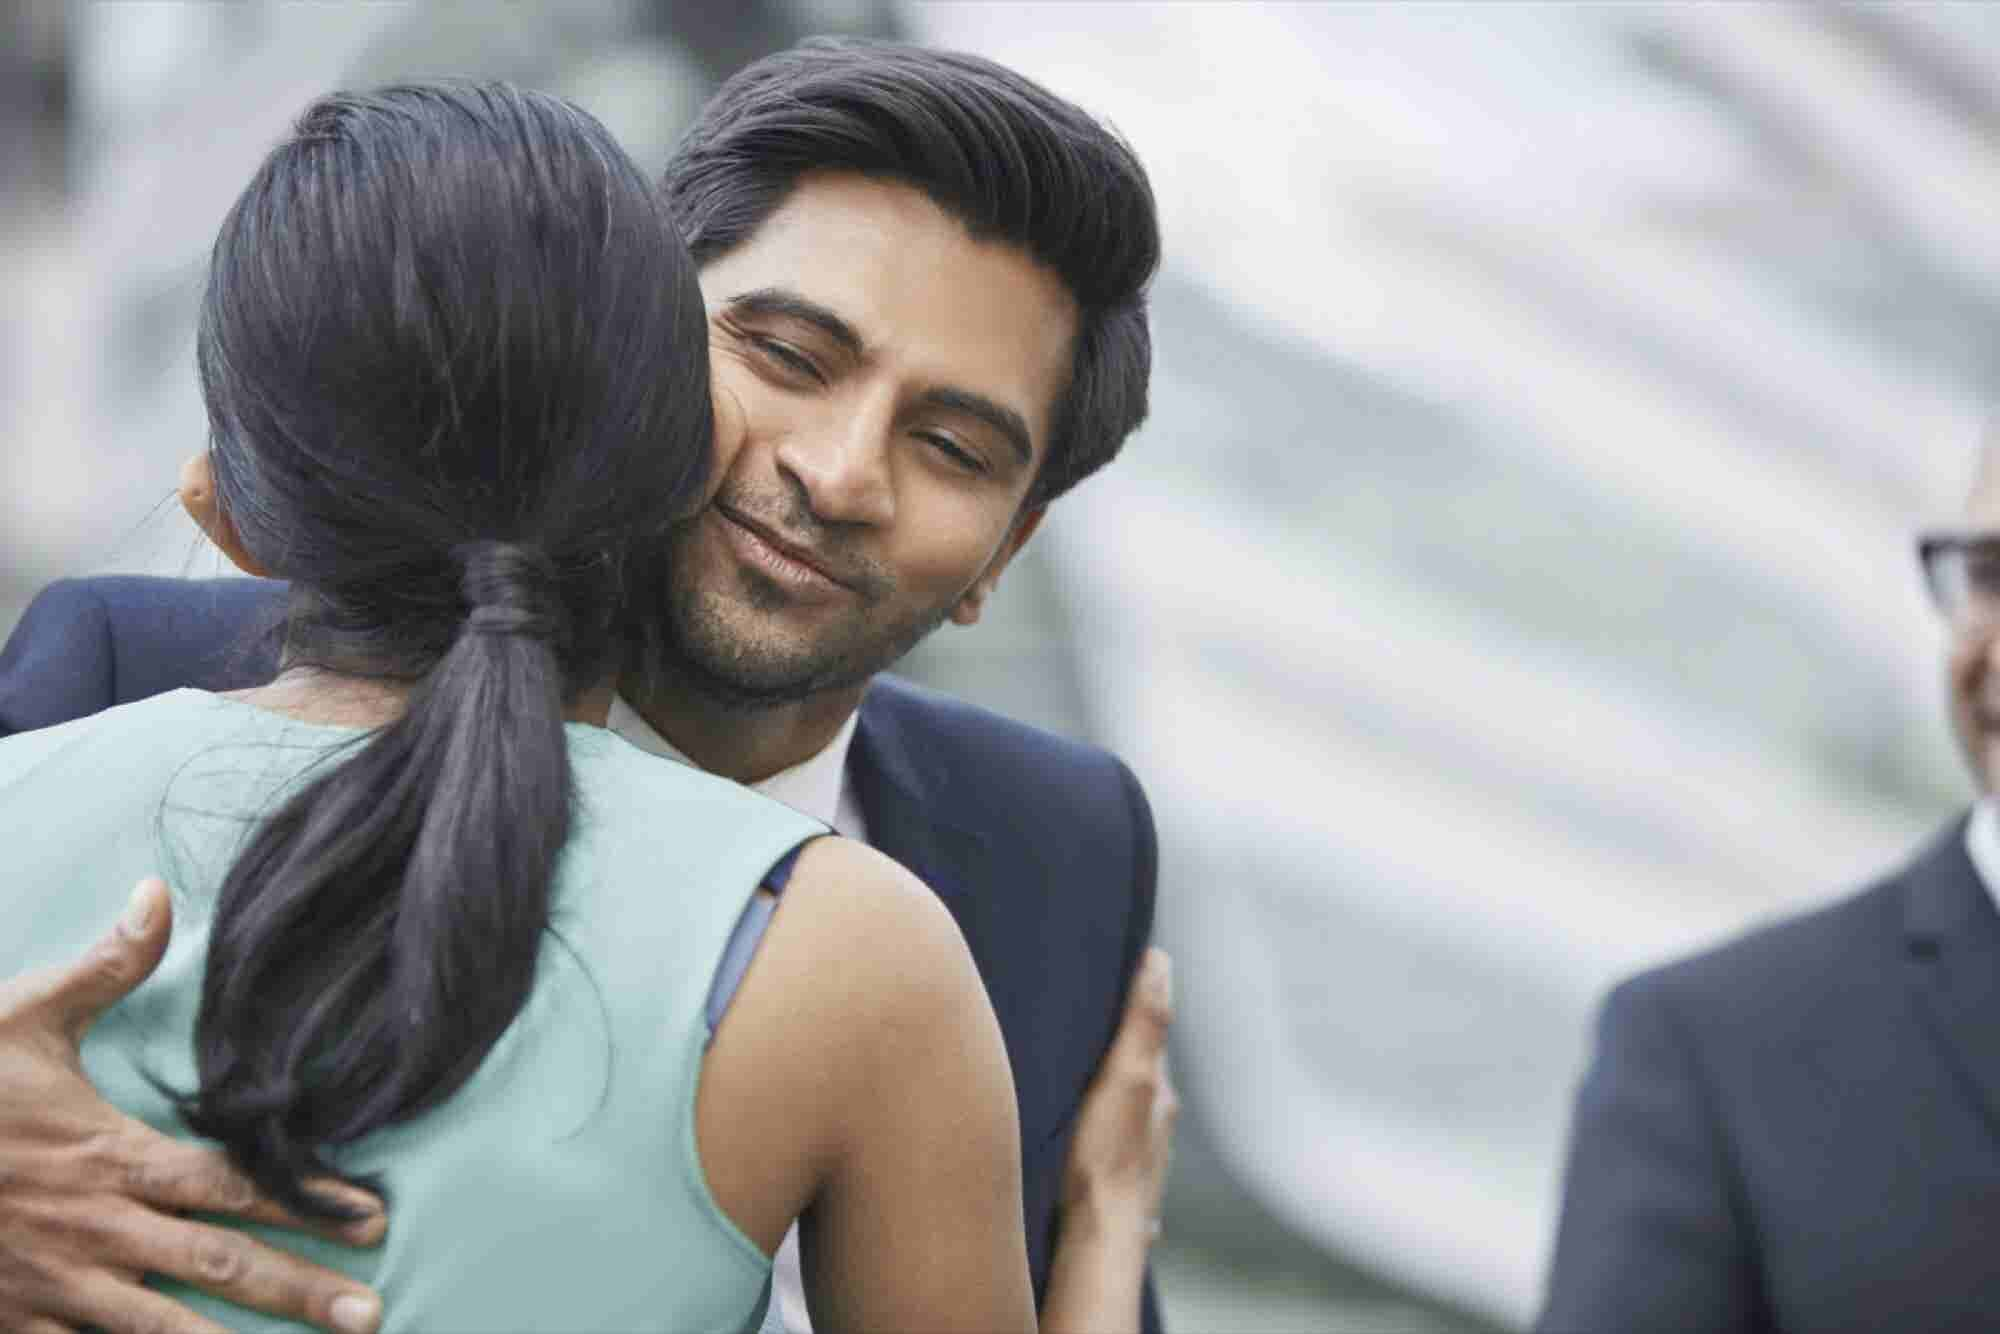 Ask the Etiquette Expert: How to Handle a Hugger